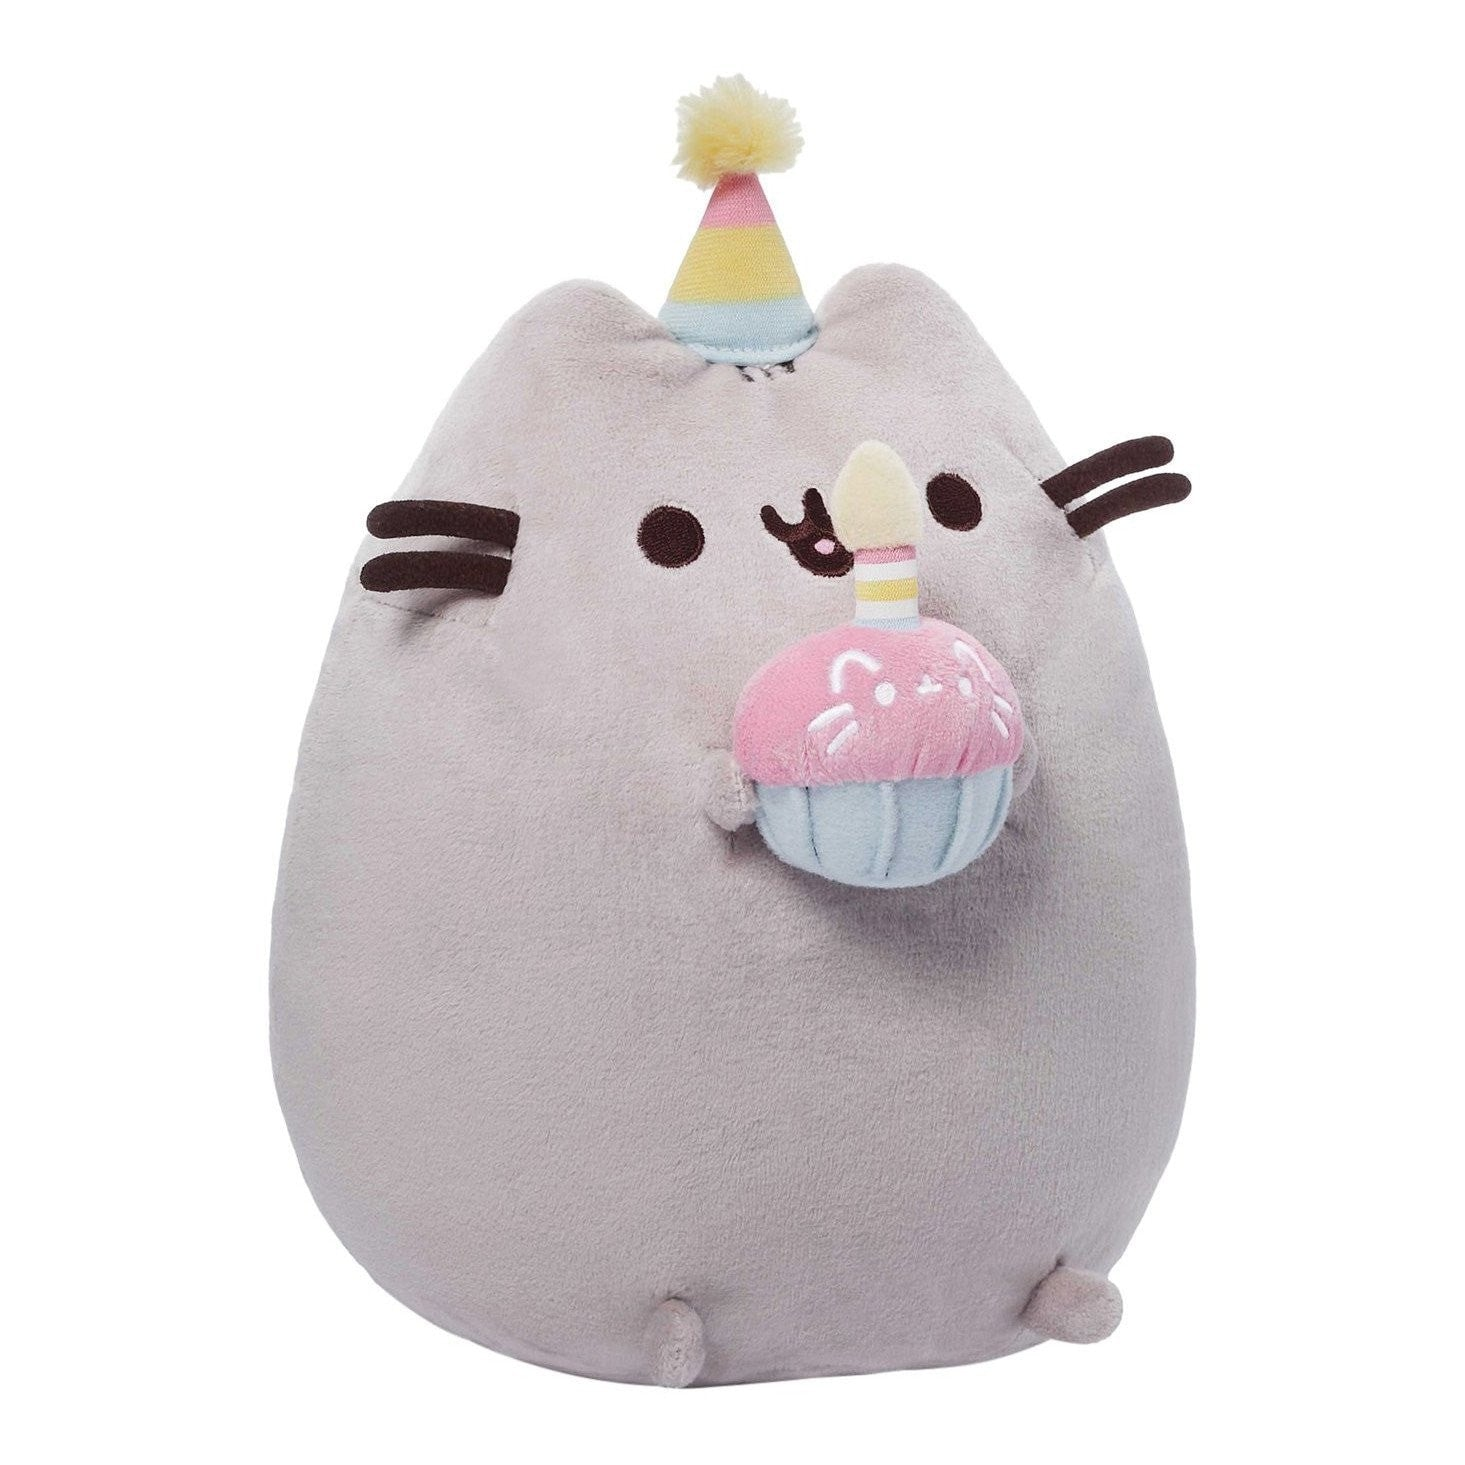 "Pusheen the Cat 10"" Birthday Cake Plush GUND"